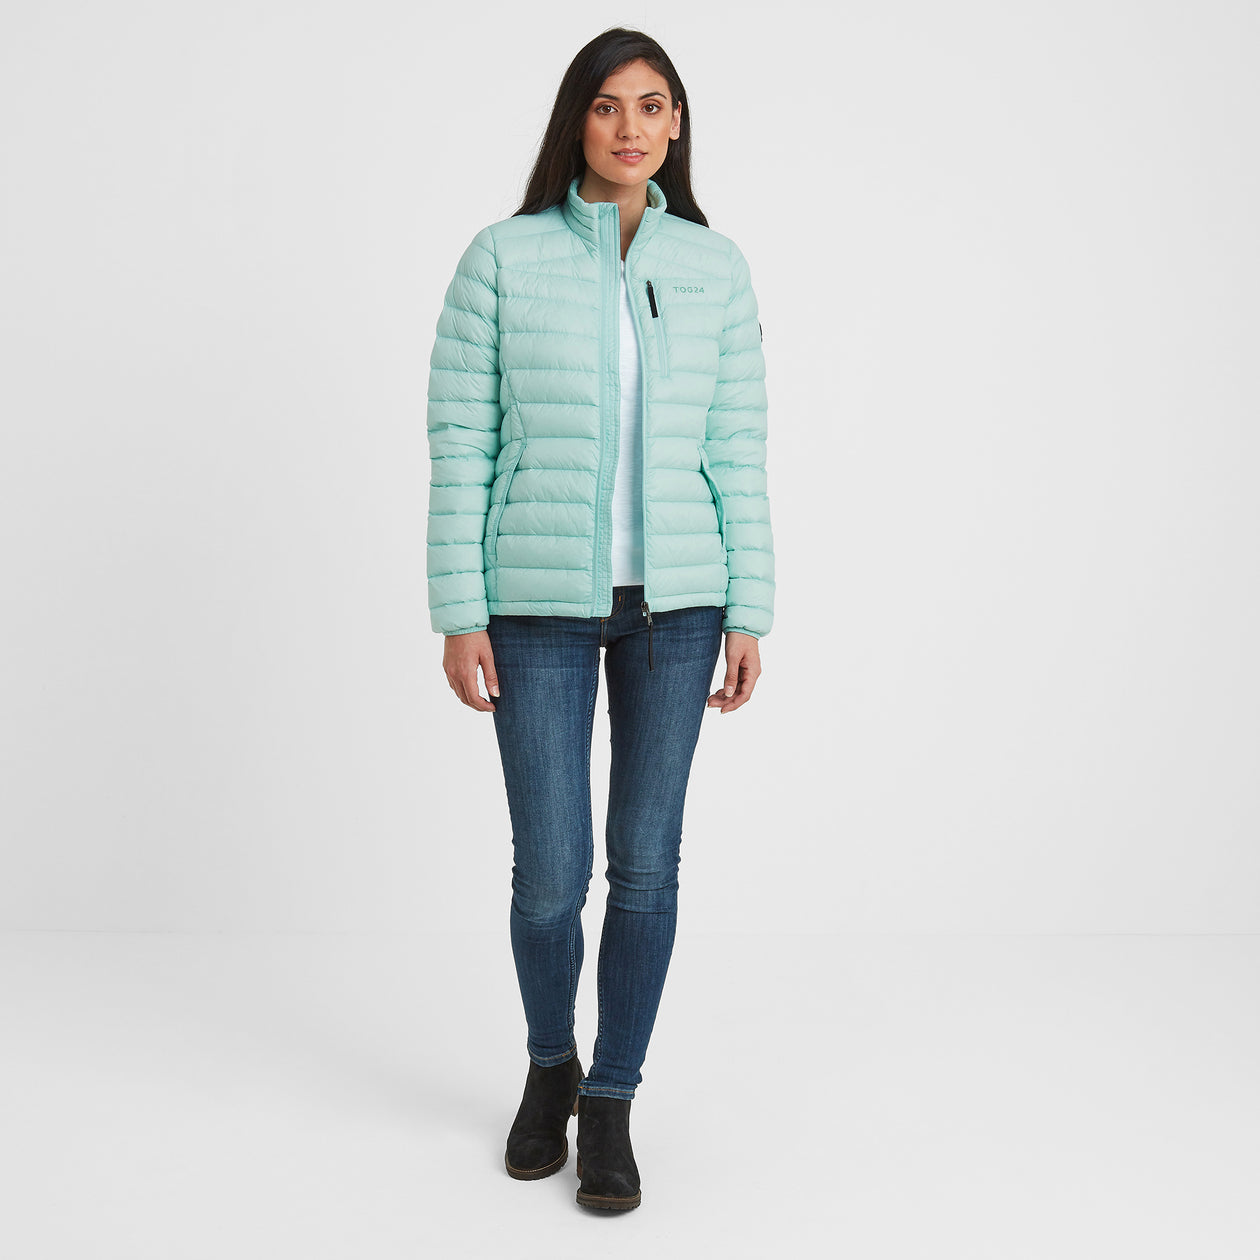 Drax Womens Funnel Down Jacket - Mint Blue image 4